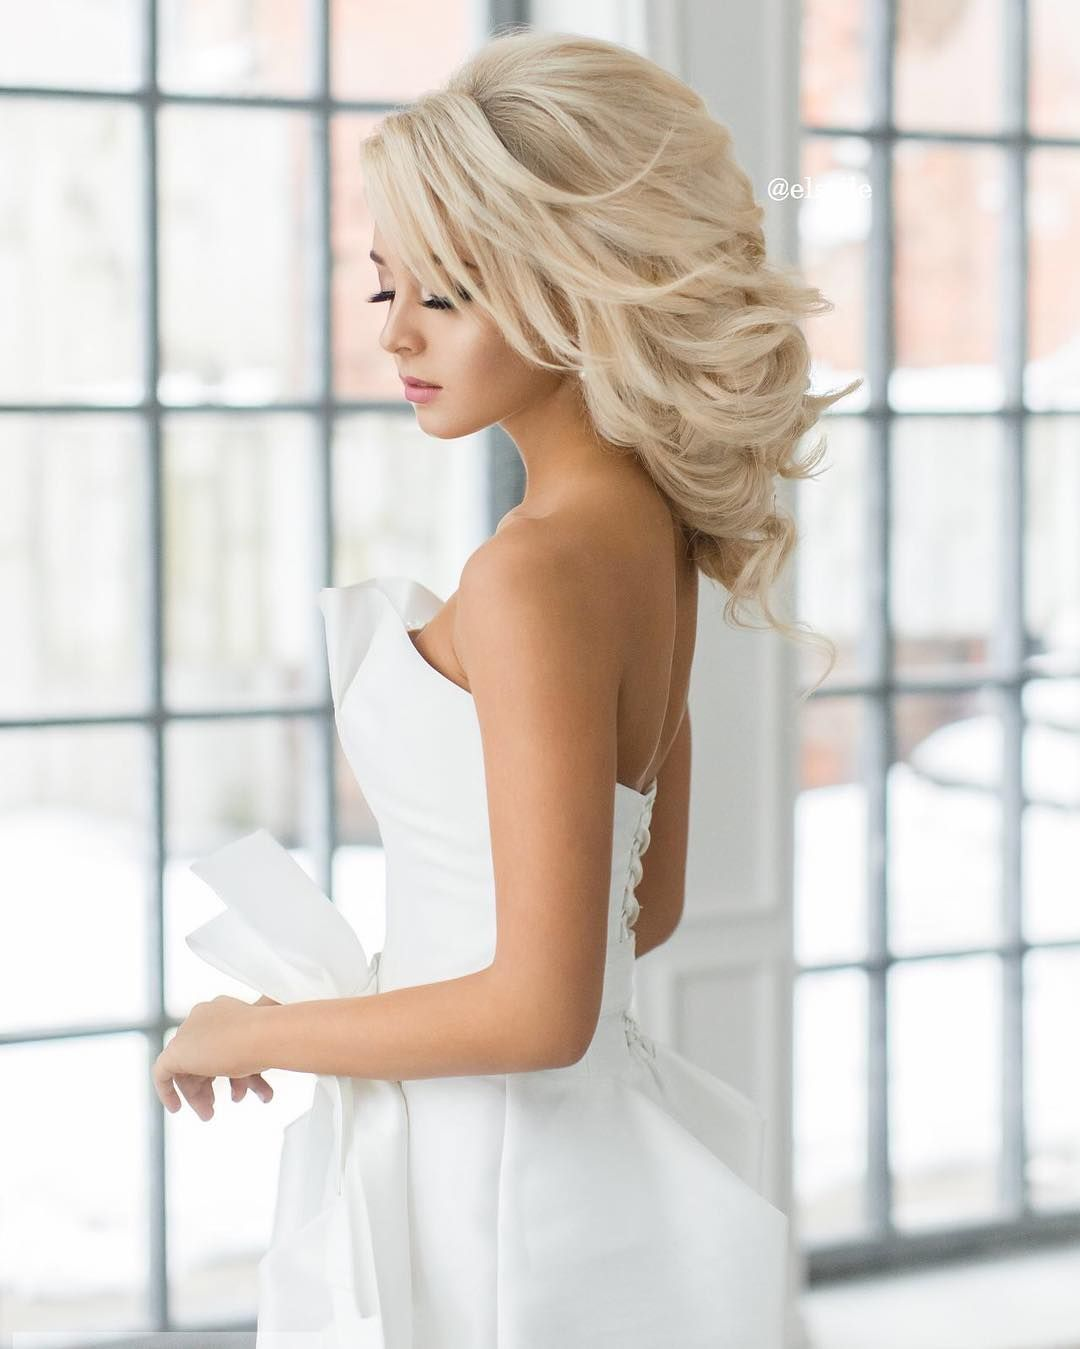 bridal hairstyle | wedding | bride | photo | blonde | updo | elegant